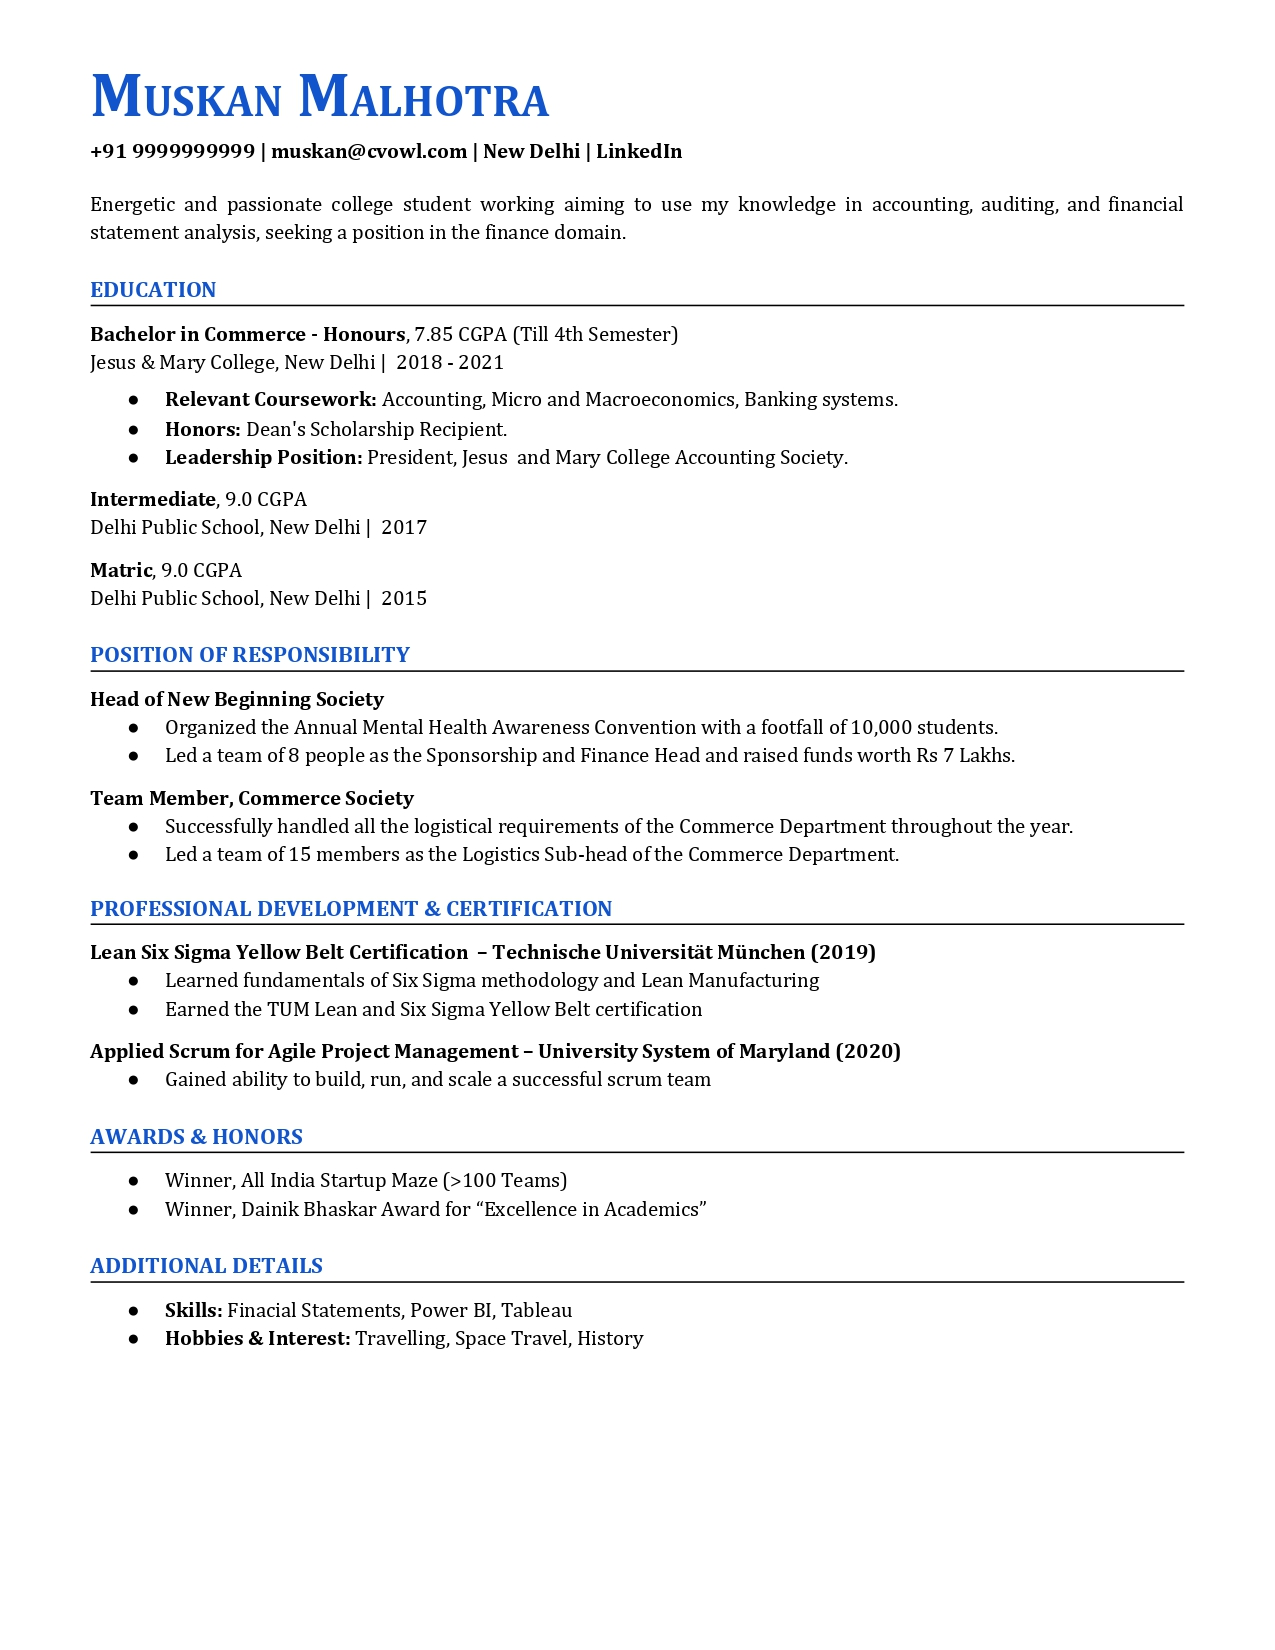 intern resume sample for college student looking internship examples resident assistant Resume Sample Resume For College Student Looking For Internship